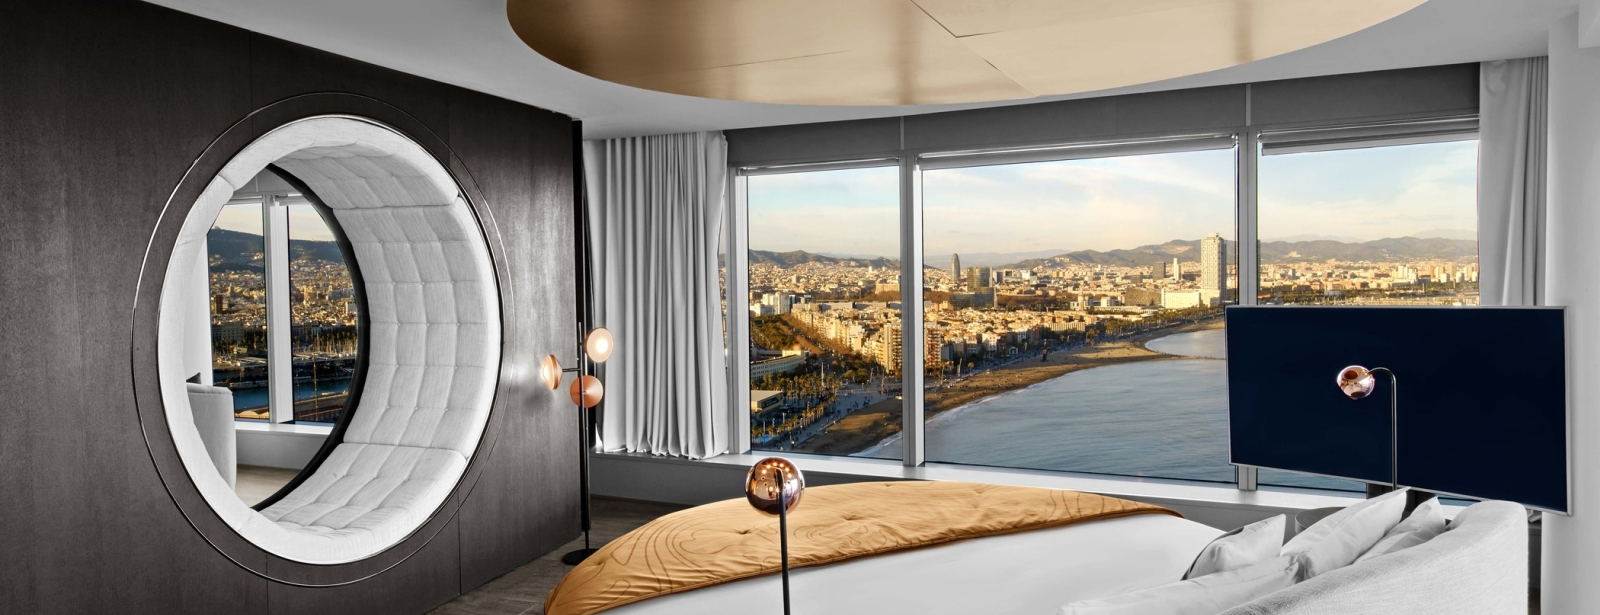 WOW Suite Bedroom at 5 star hotel W Barcelona